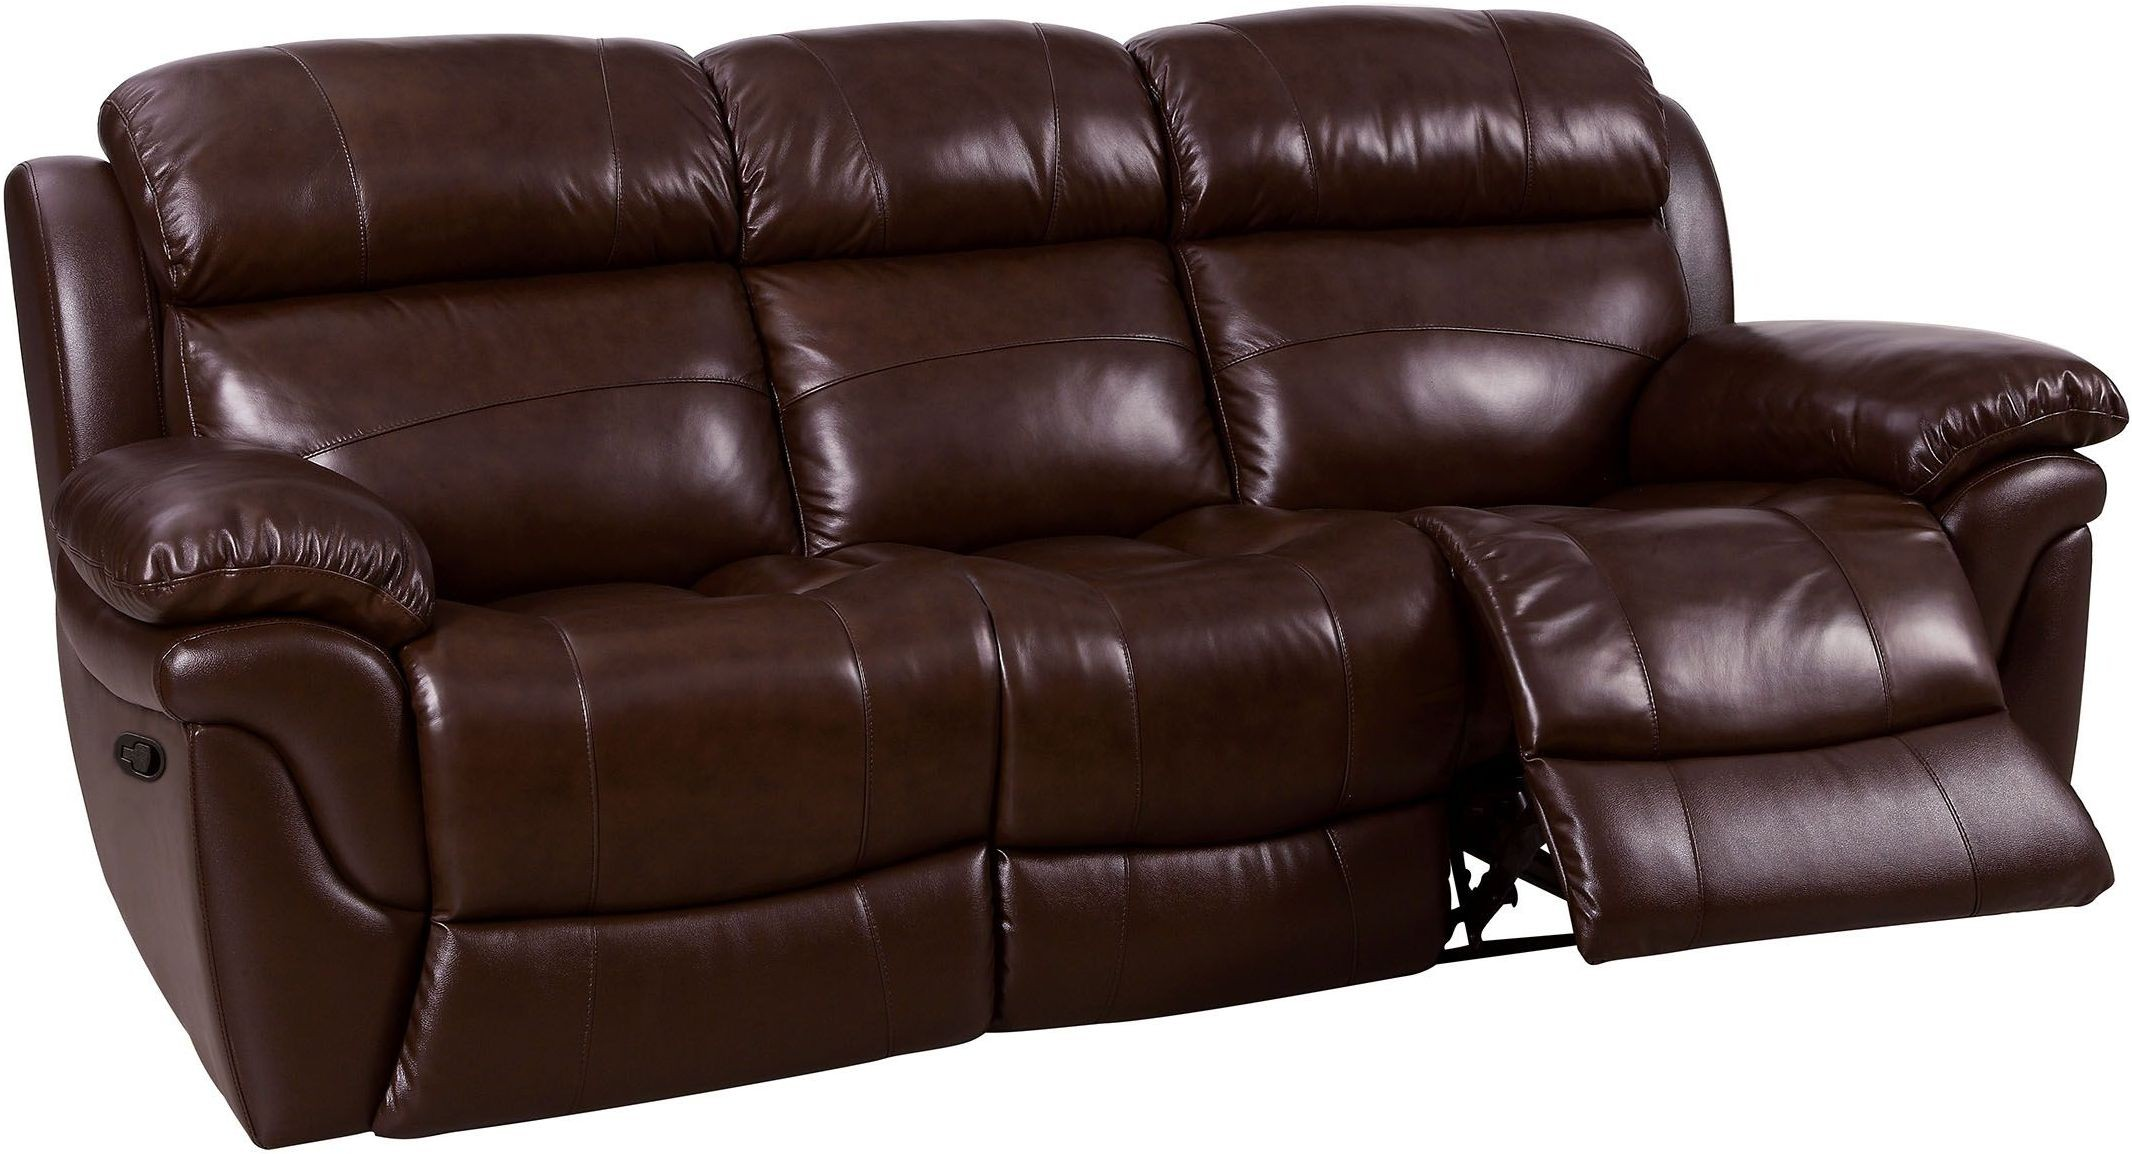 justine brown leather reclining sofa cm6784 sf furniture of america. Black Bedroom Furniture Sets. Home Design Ideas